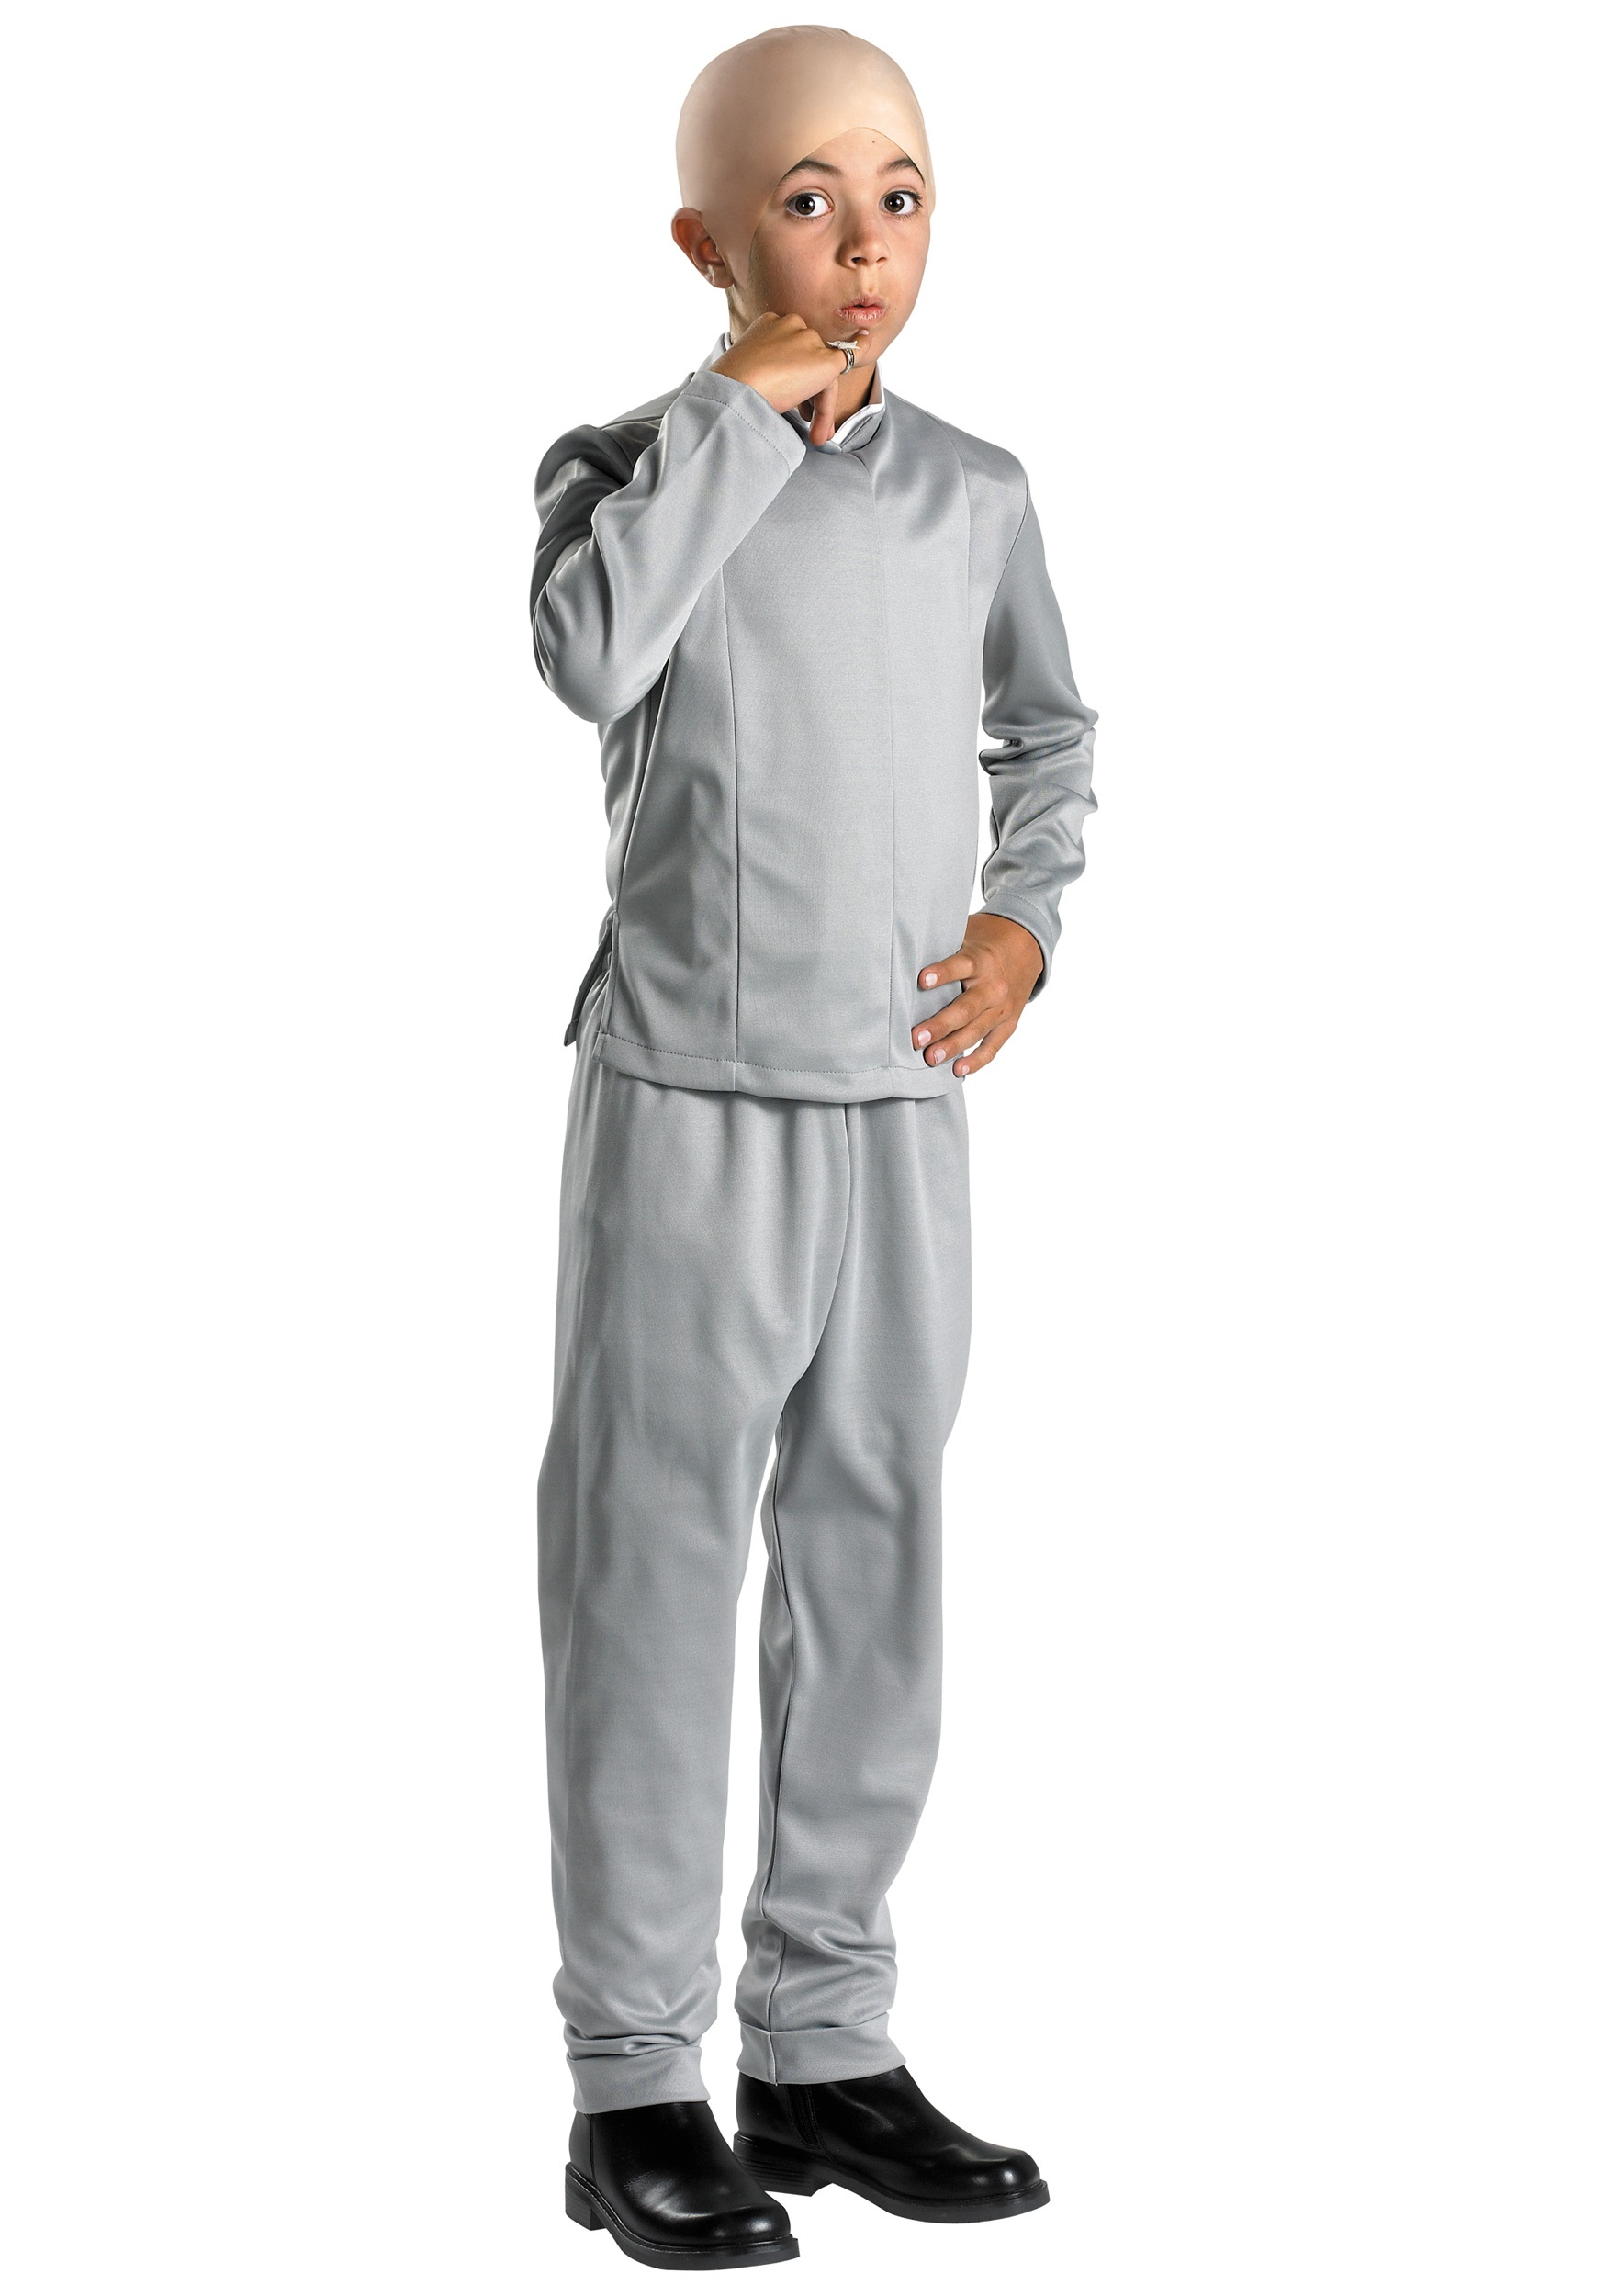 sc 1 st  Halloween Costumes & Child Deluxe Dr. Evil Costume